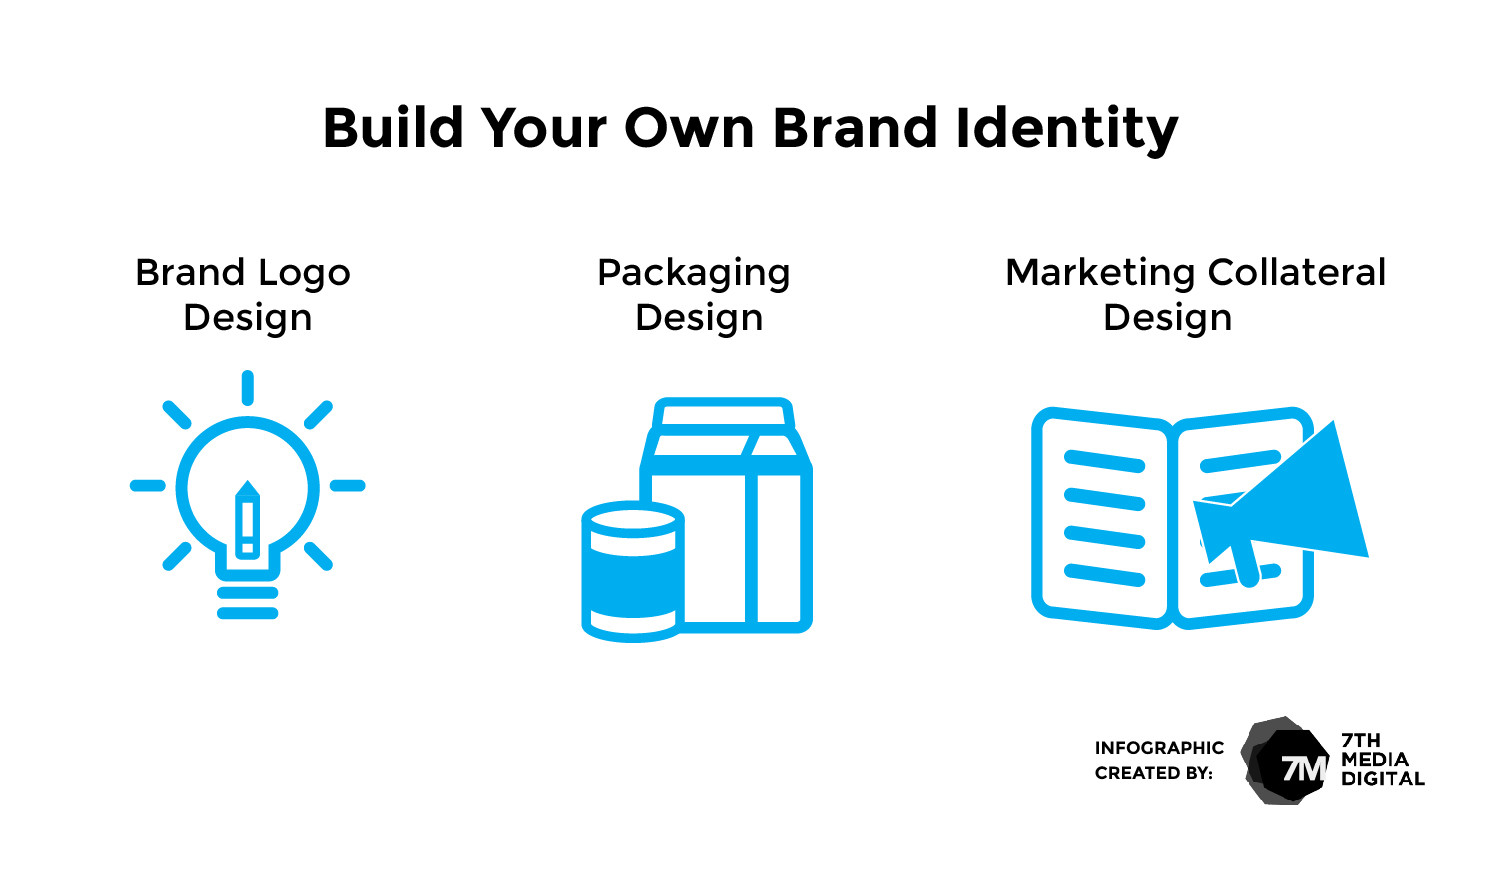 petal photo sharing build your own brand identity infographic